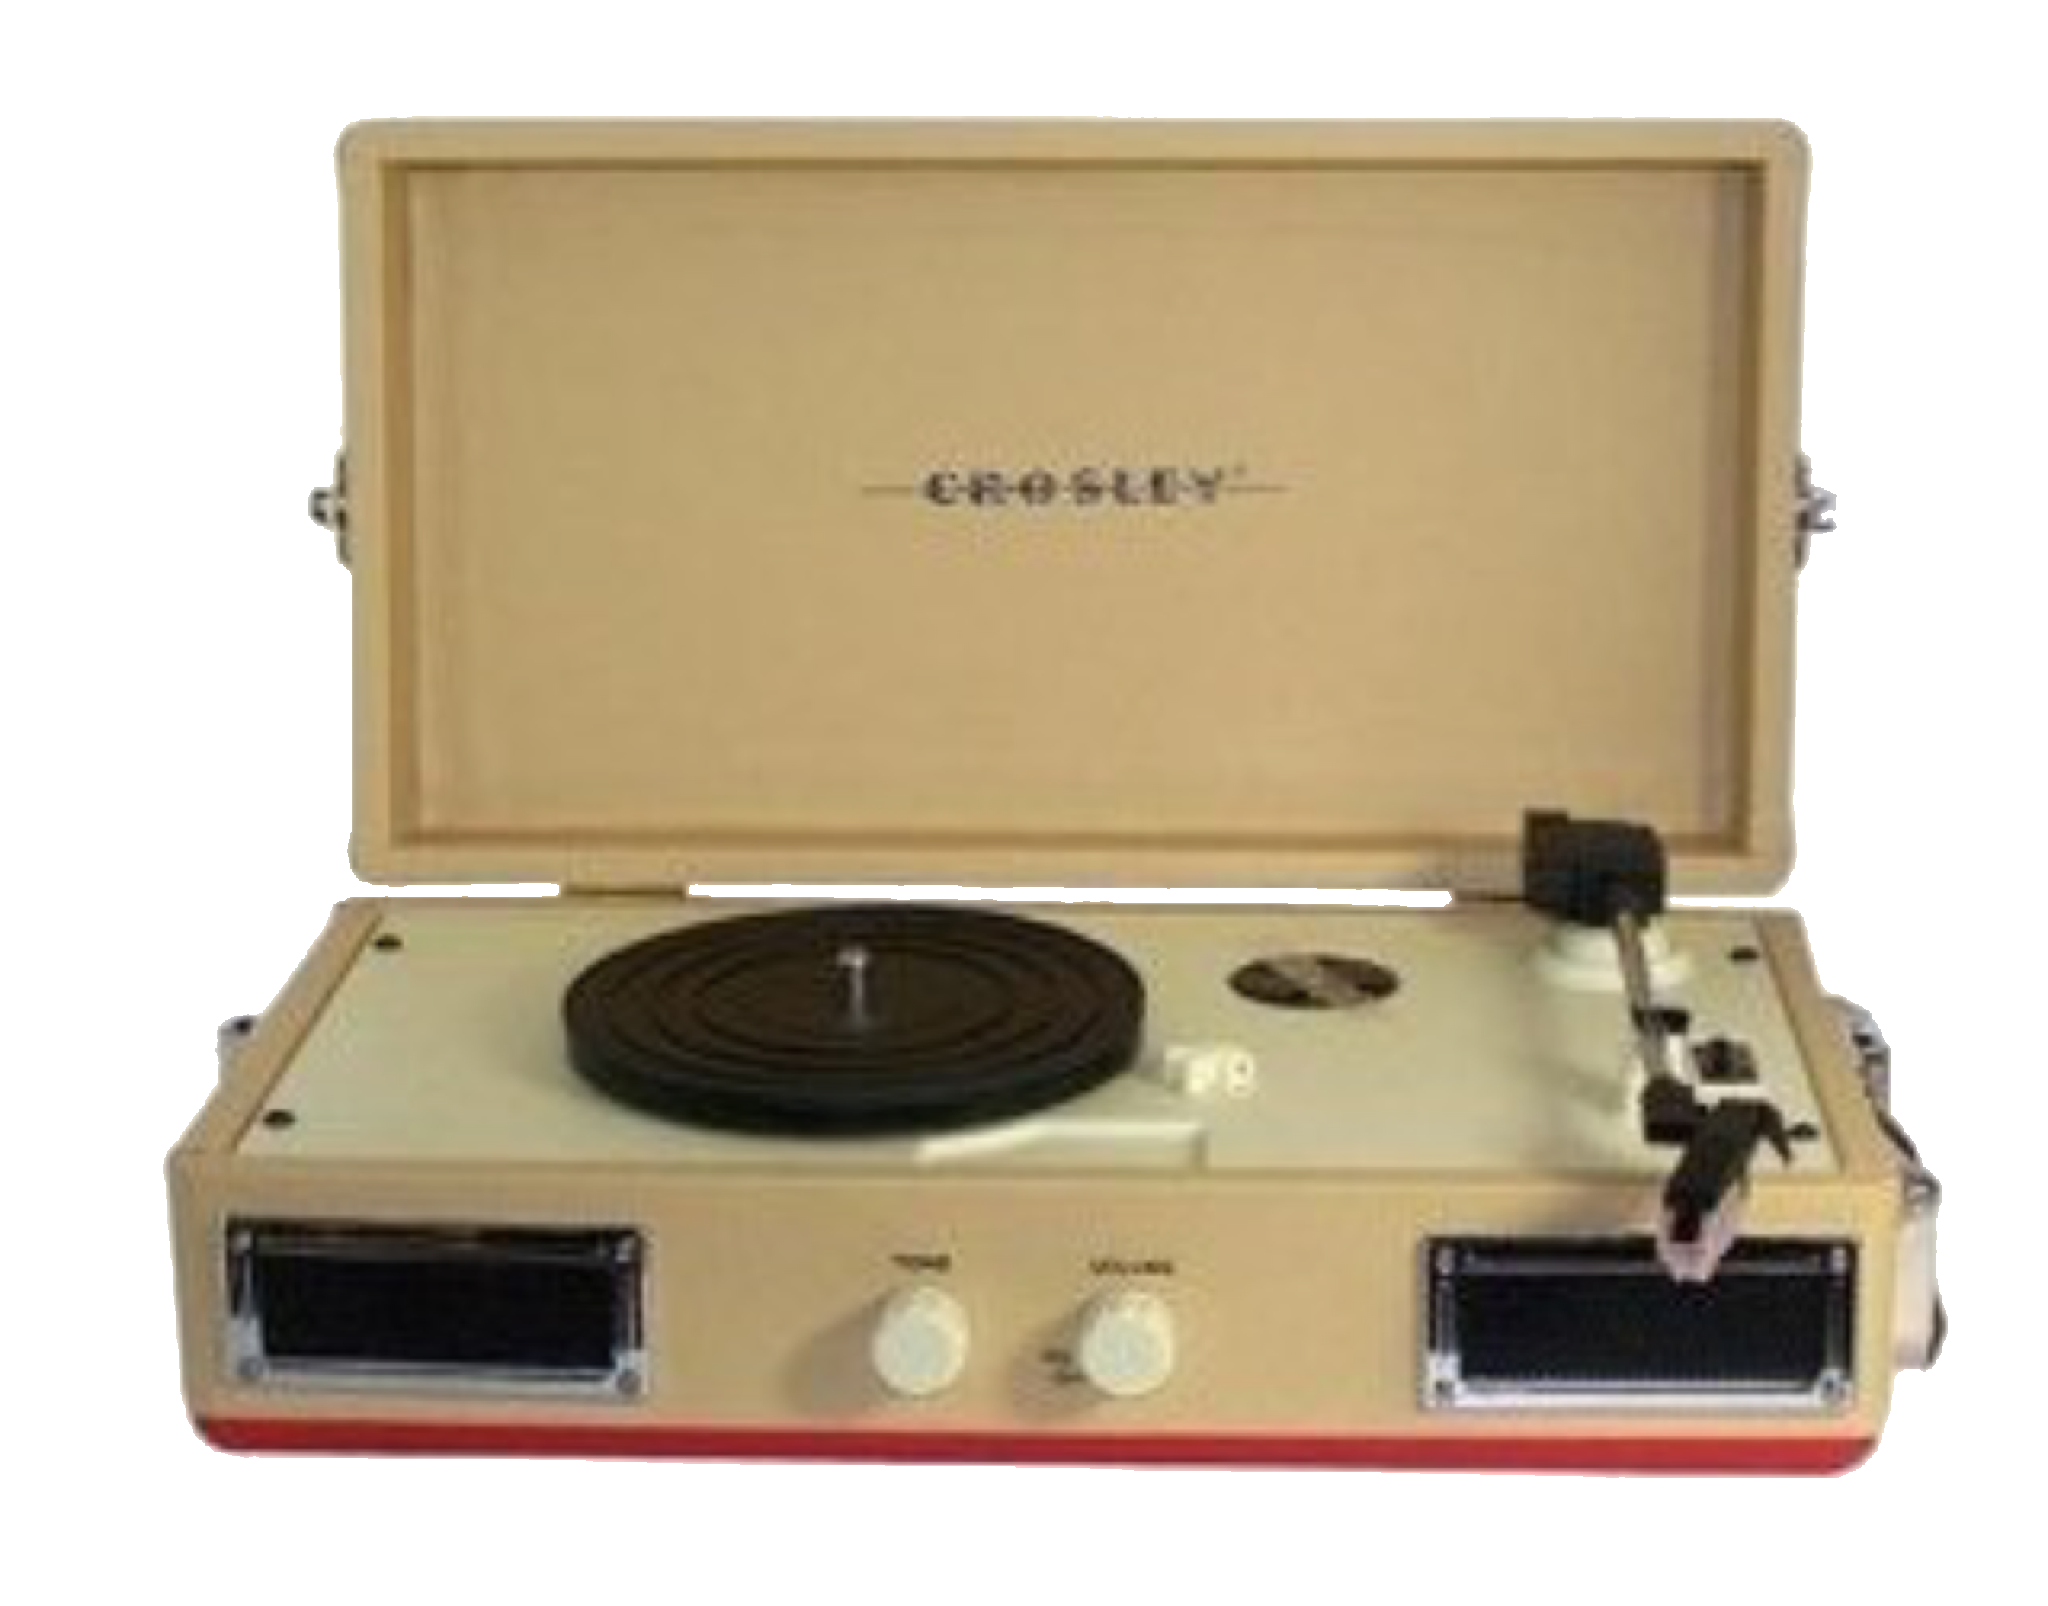 Pin By Betsy On Png Record Player Turntable Turntable Record Player